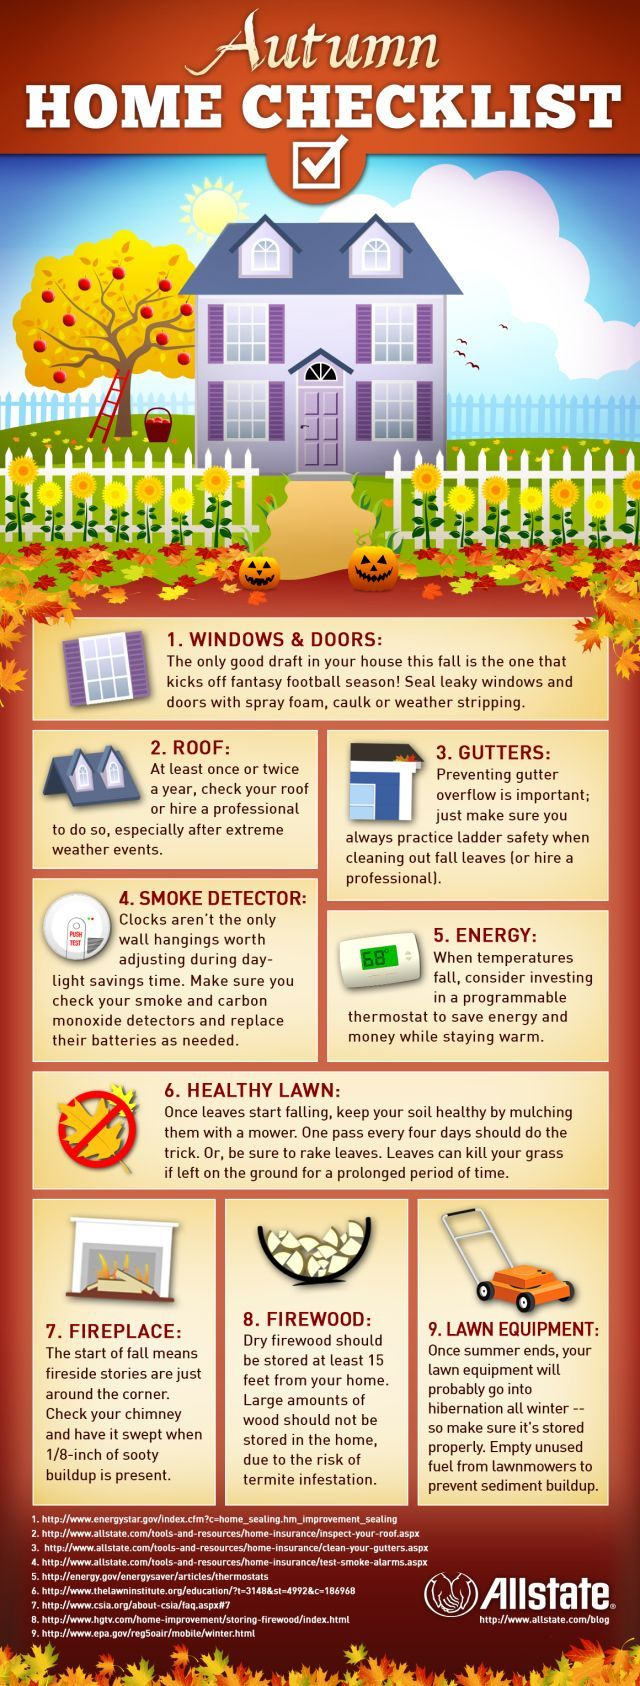 Selling your house checklist - Autumn Home Checklist